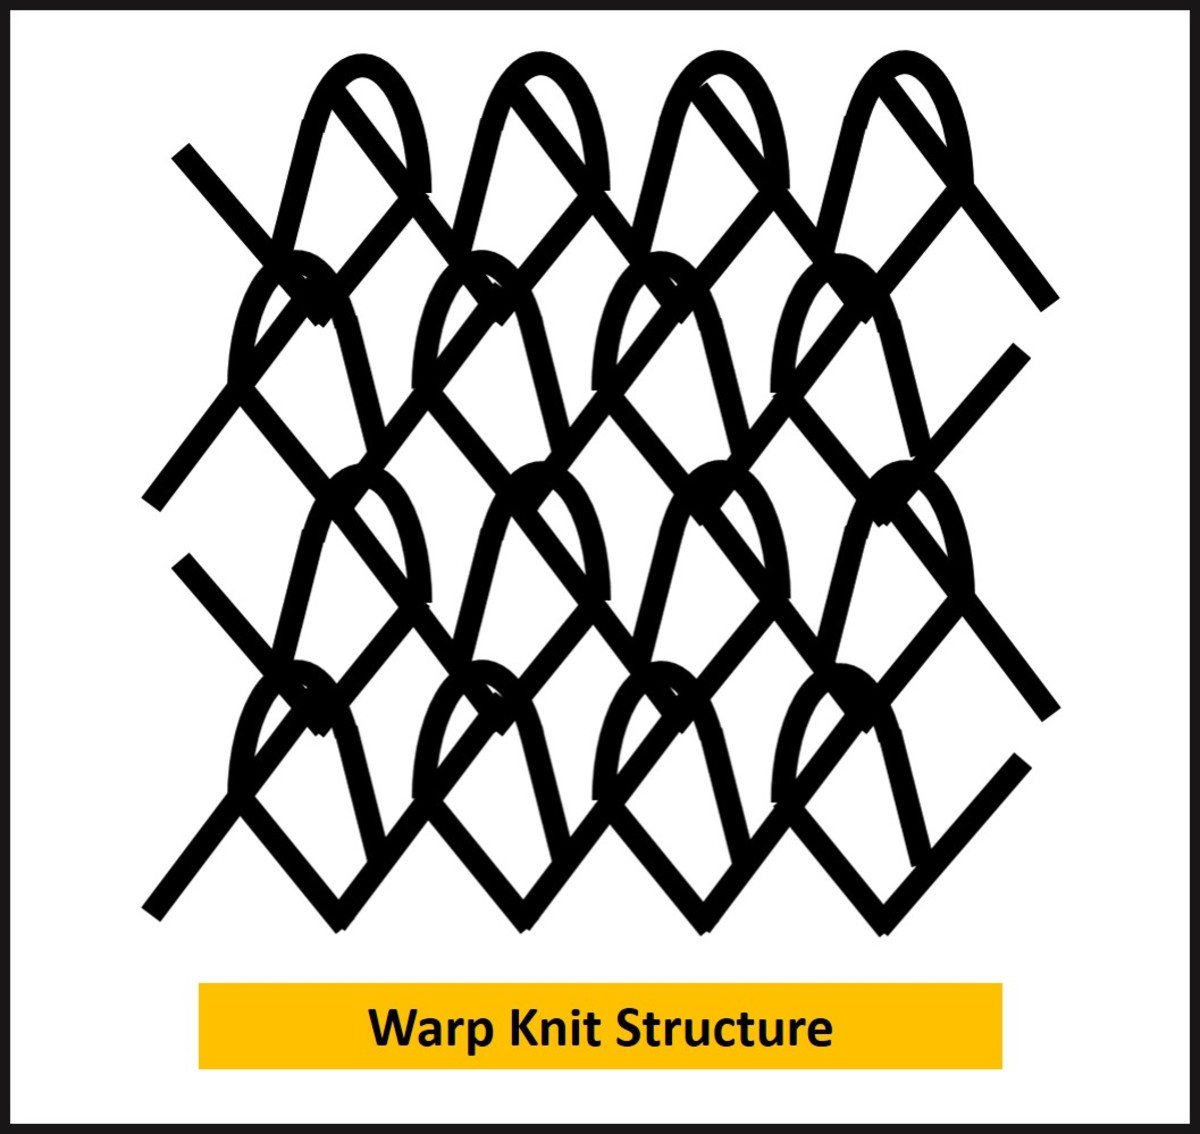 Warp Knit Fabric Structure